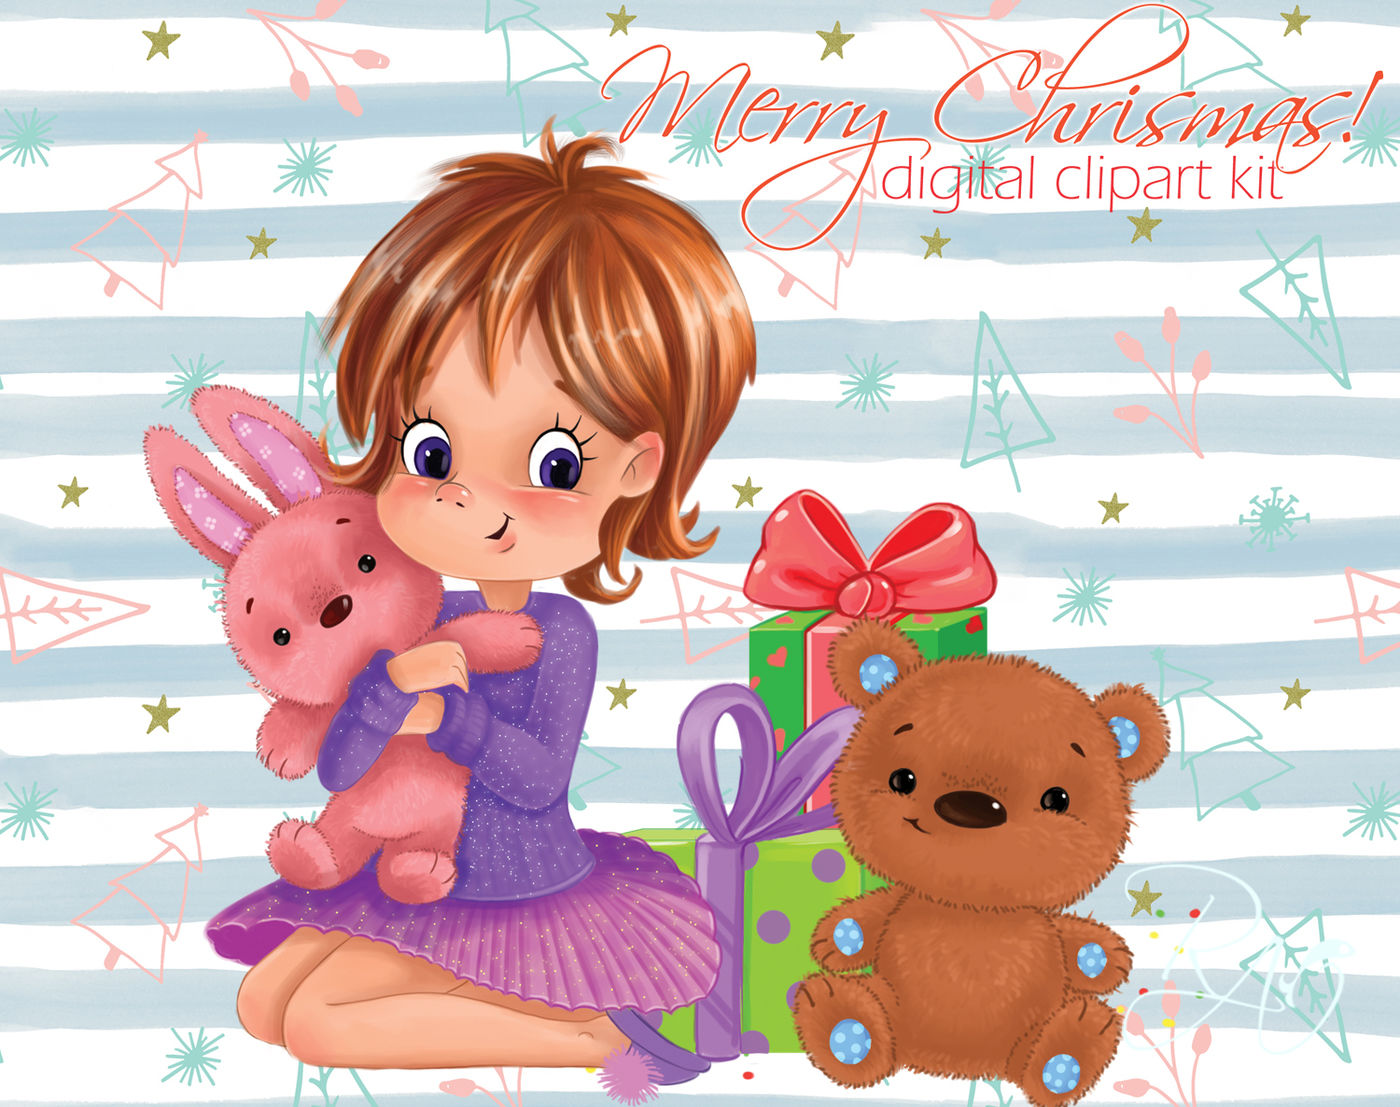 Cute Girl With Gifts And Teddy Bear Christmas Clipart Kit By Rivus